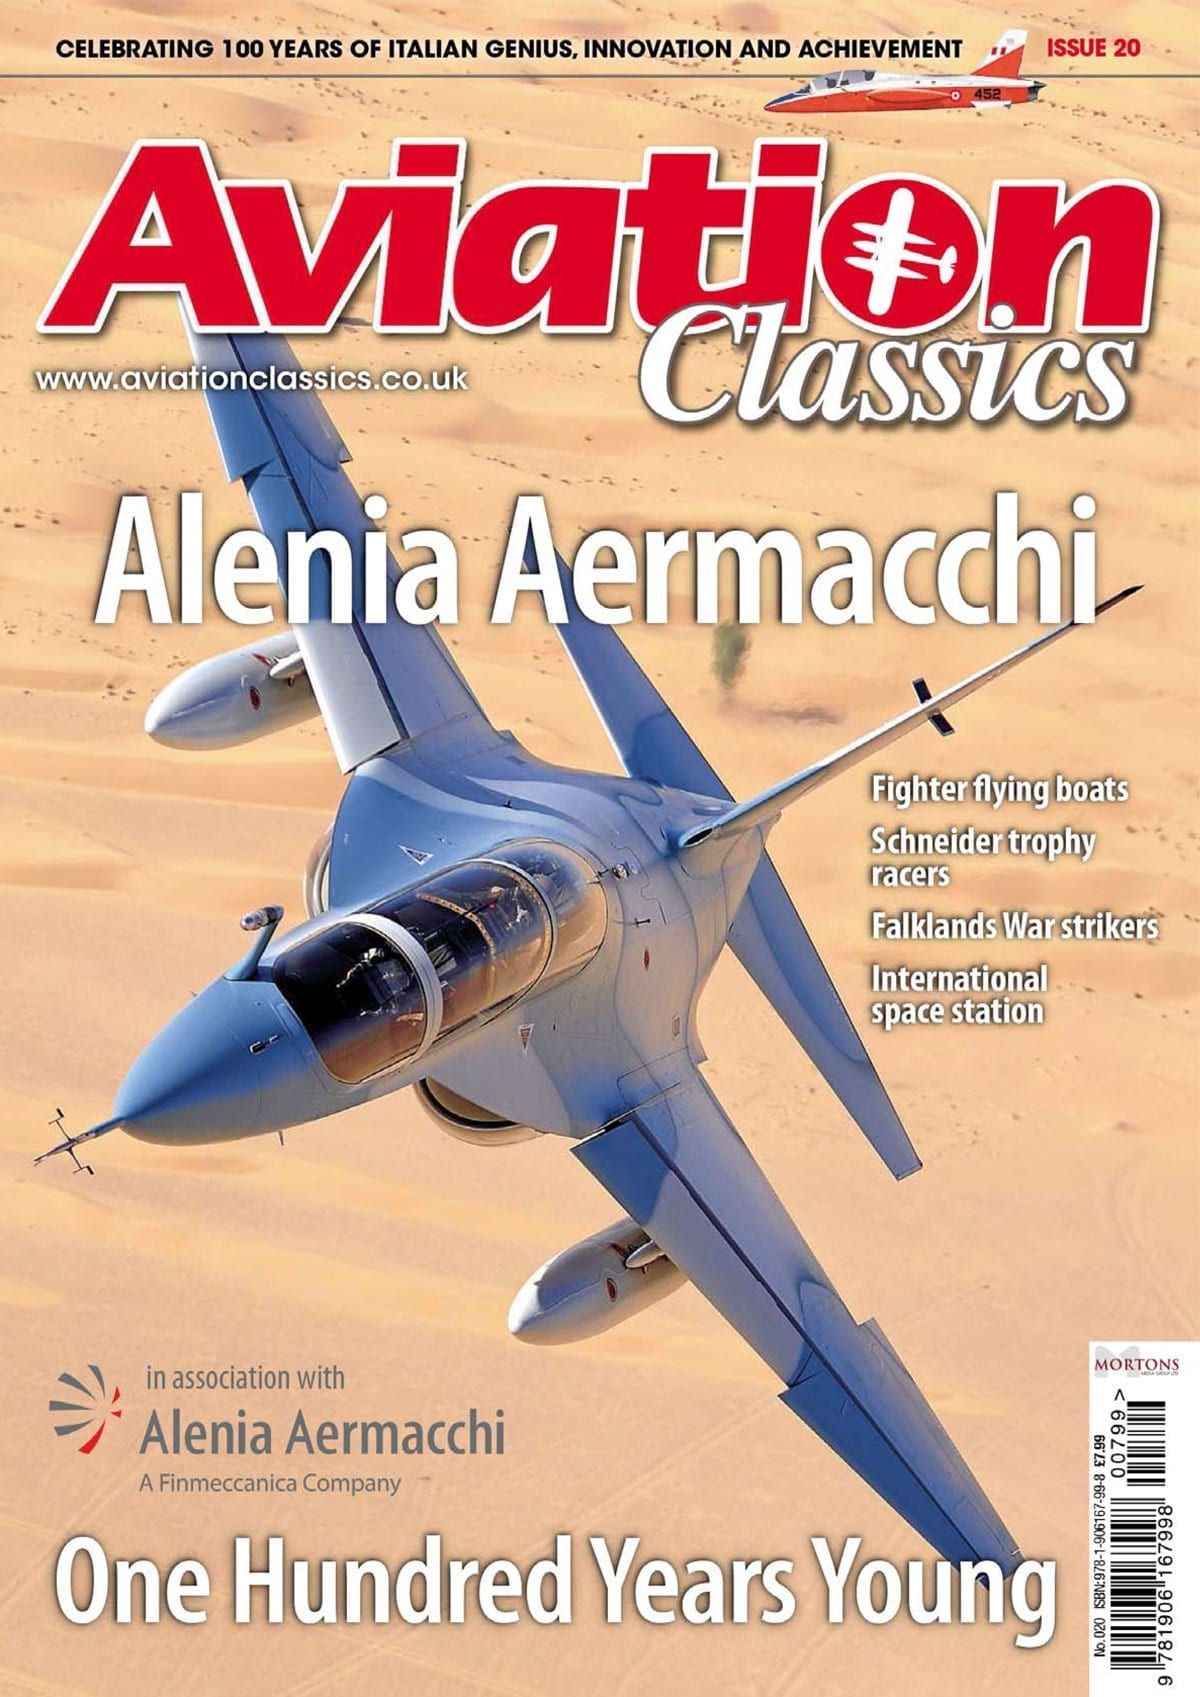 Aviation Classics - Alenia Aermacchi